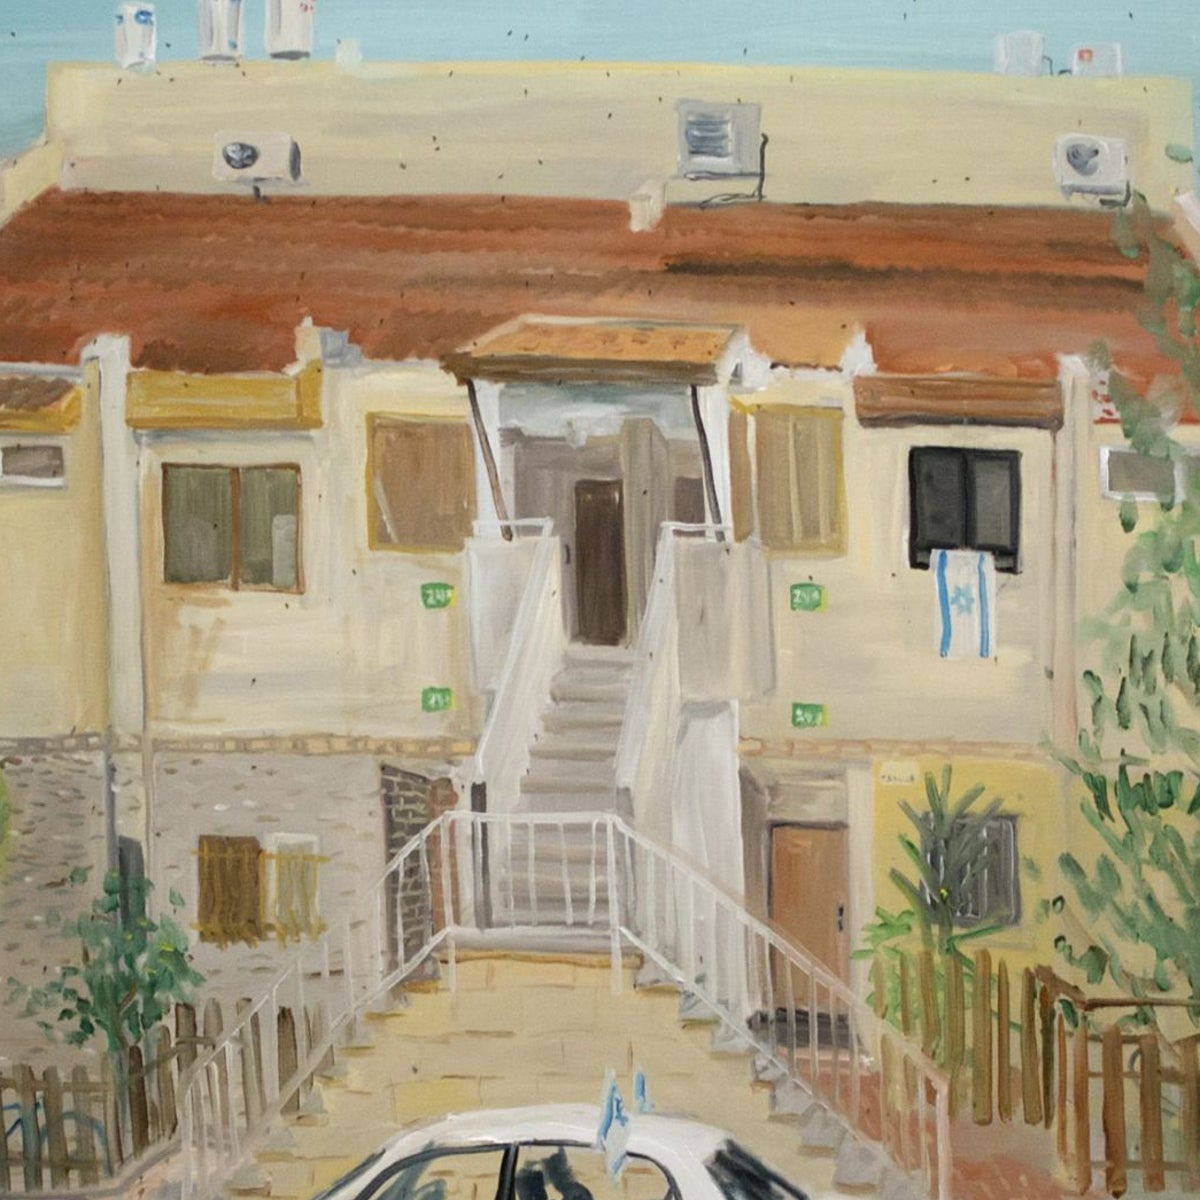 'Untitled' (2016) by Ratgar Kjartansson, one of 10 paintings of settlement homes in the occupied territories.